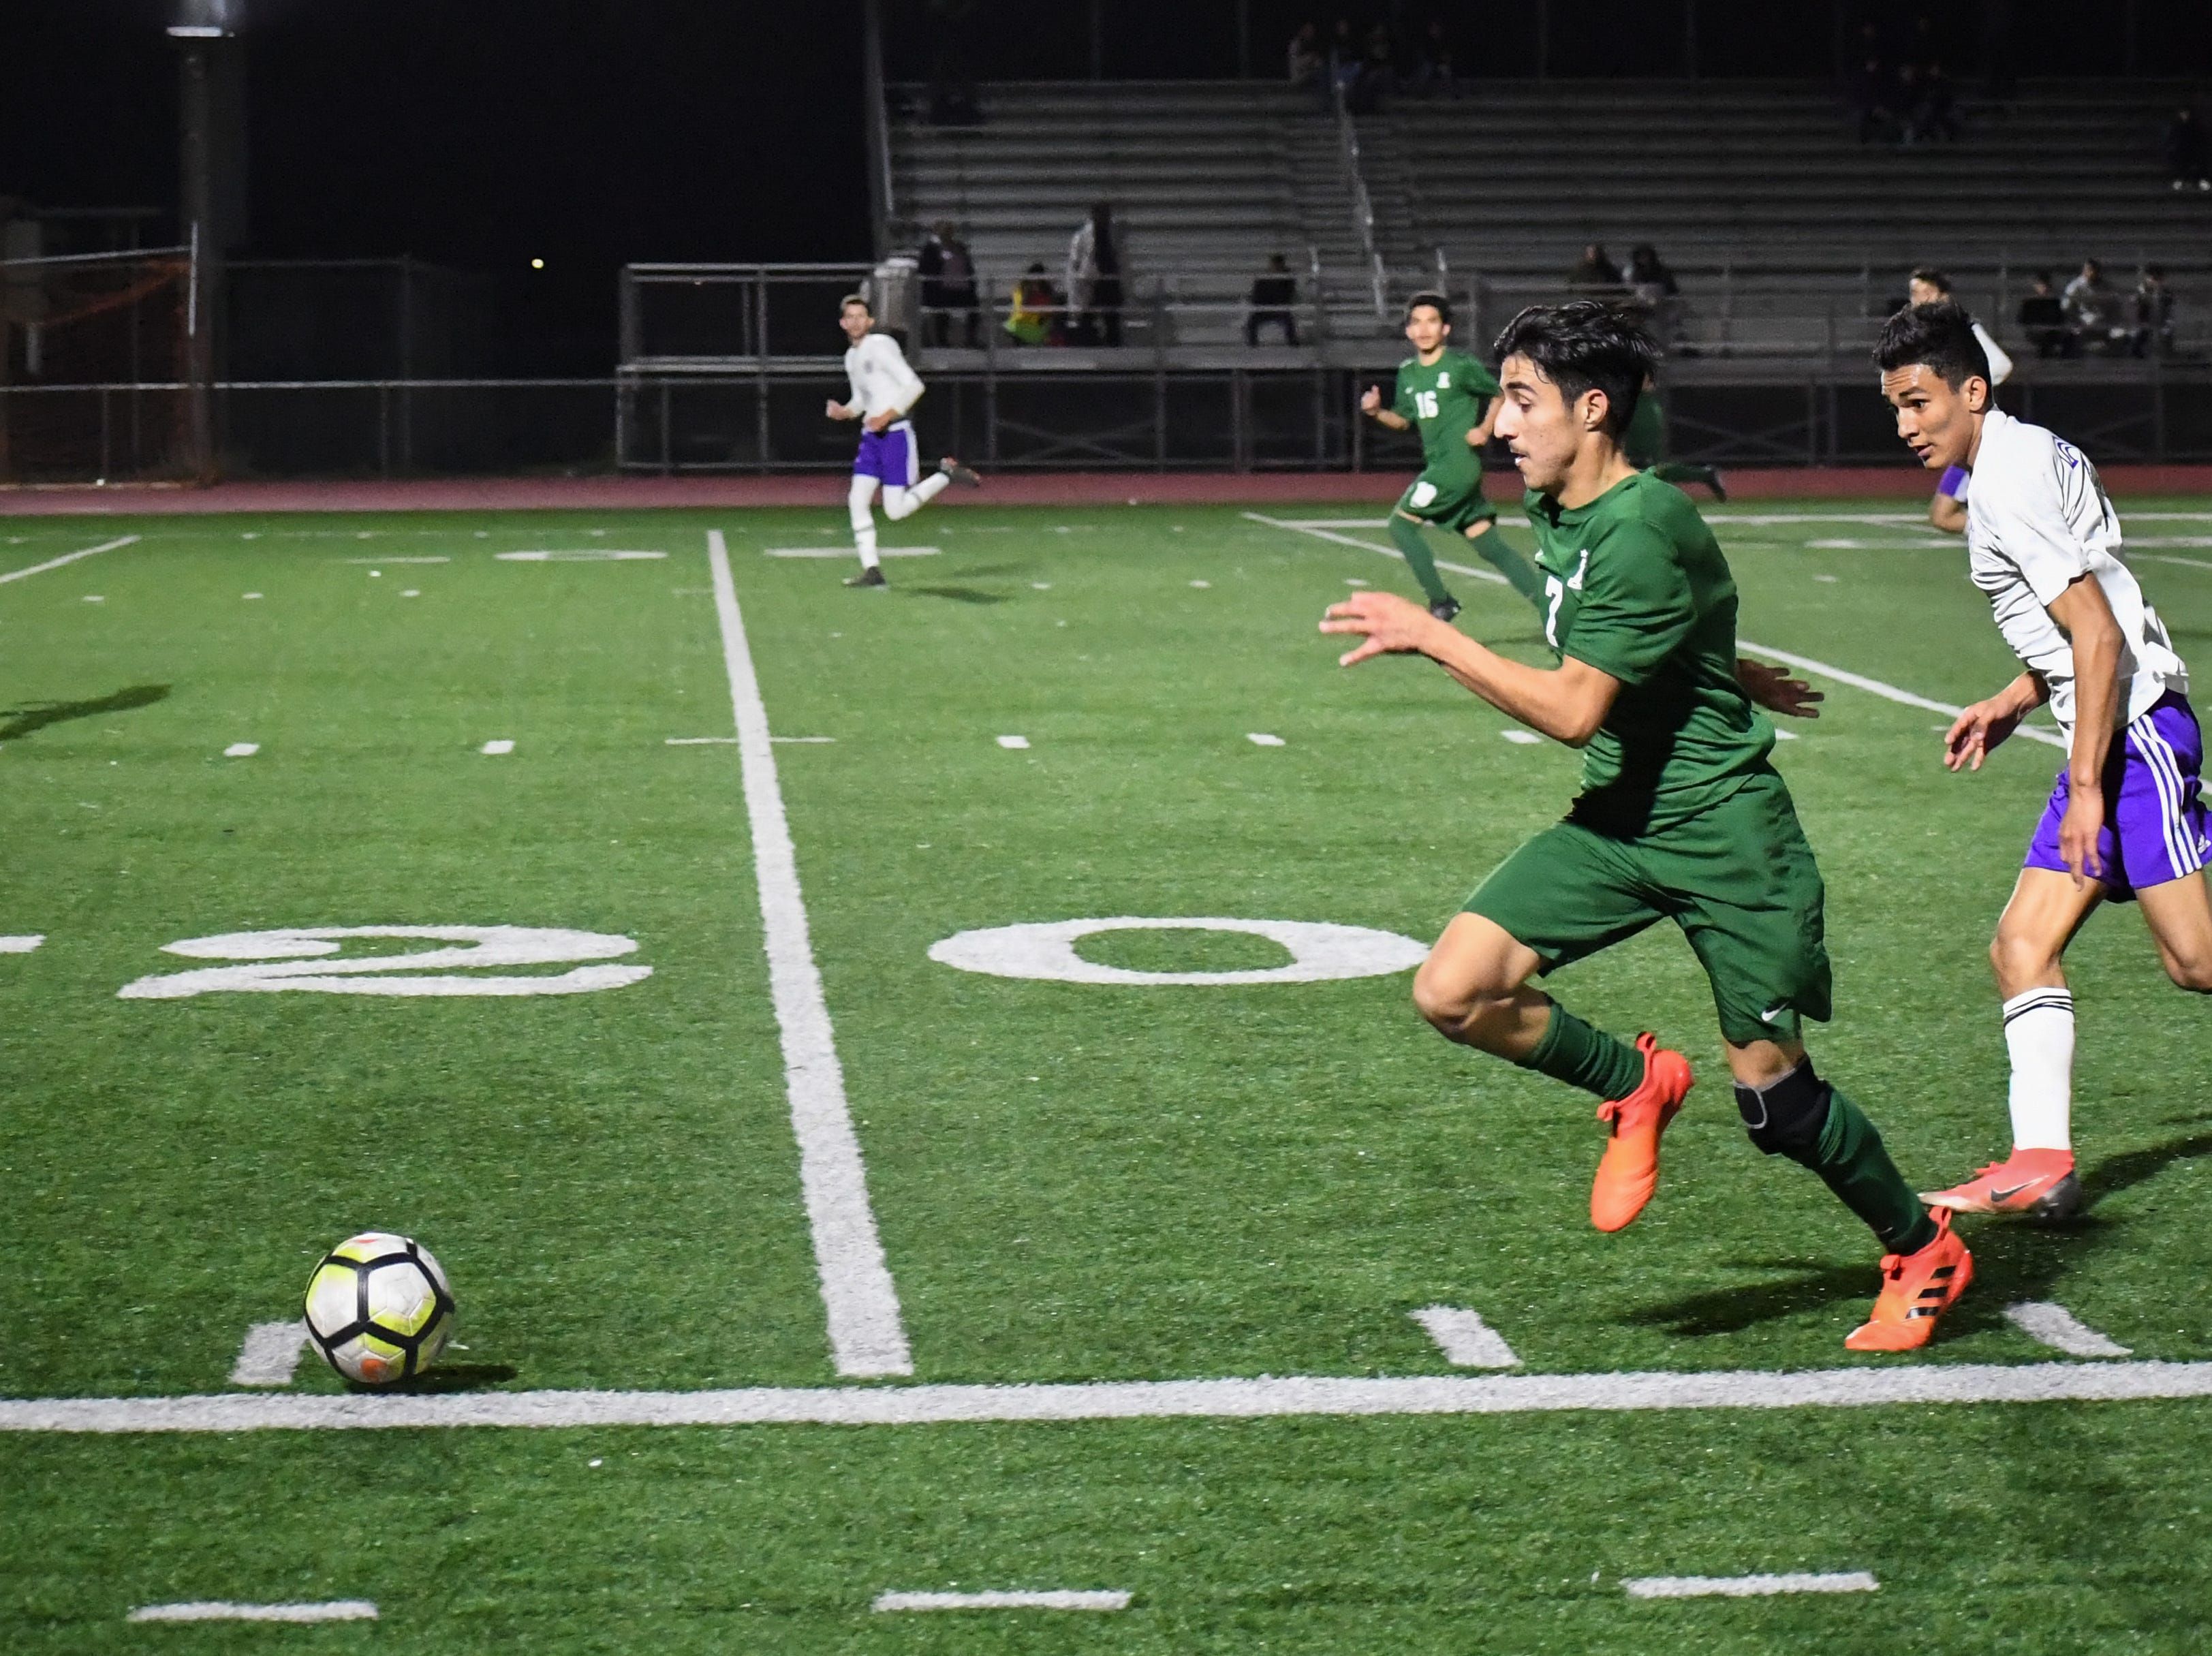 Alisal midfielder Julien Peguero (7) sprints past a defender.